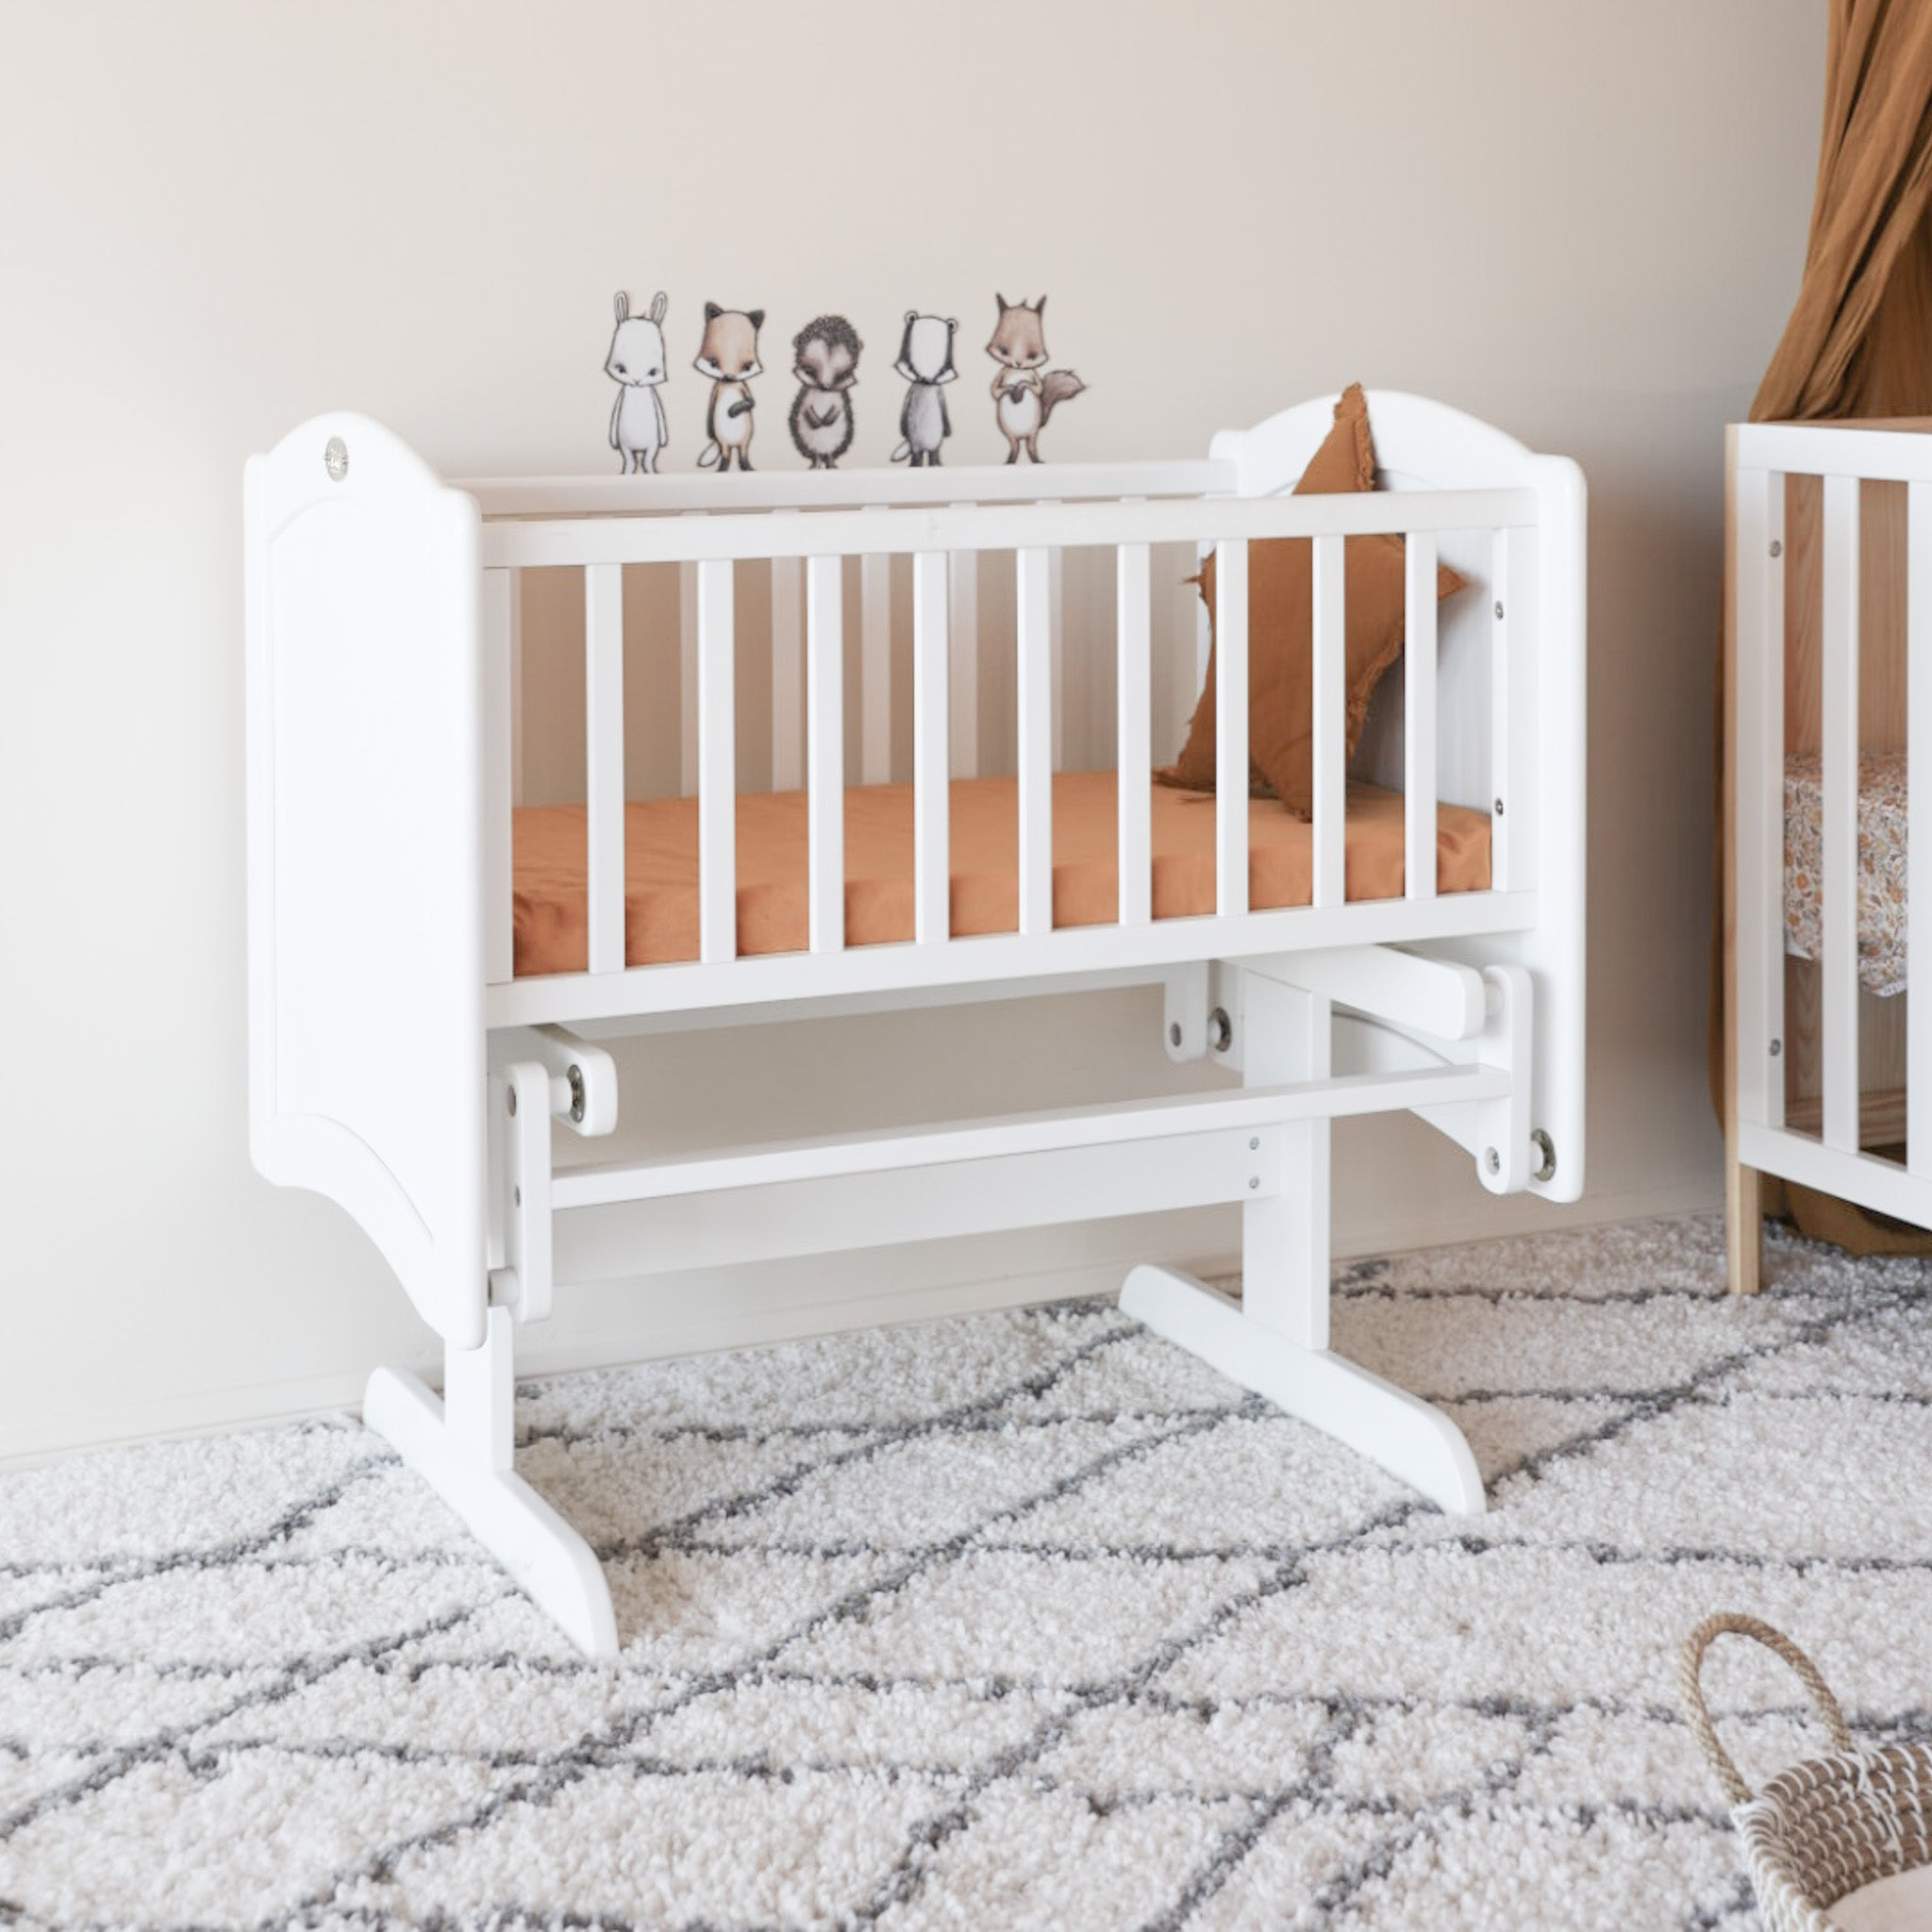 Modern Cot with Chest and Cradle